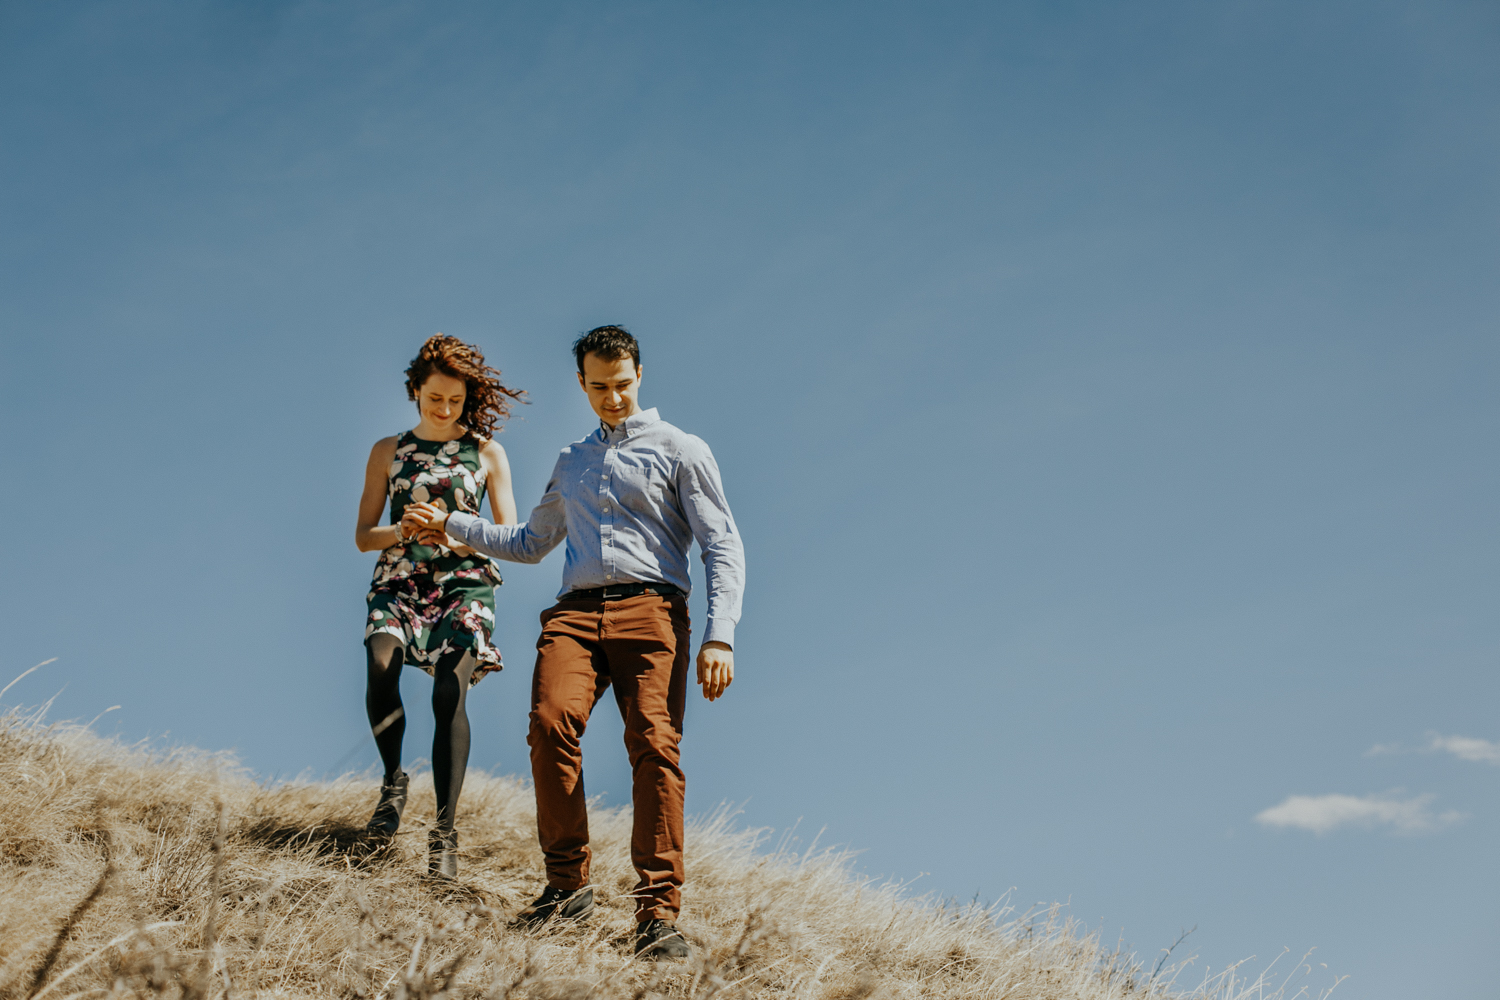 lethbridge-photographer-love-and-be-loved-photography-jodie-adam-coulee-hillside-engagement-photo-image-picture-51.jpg